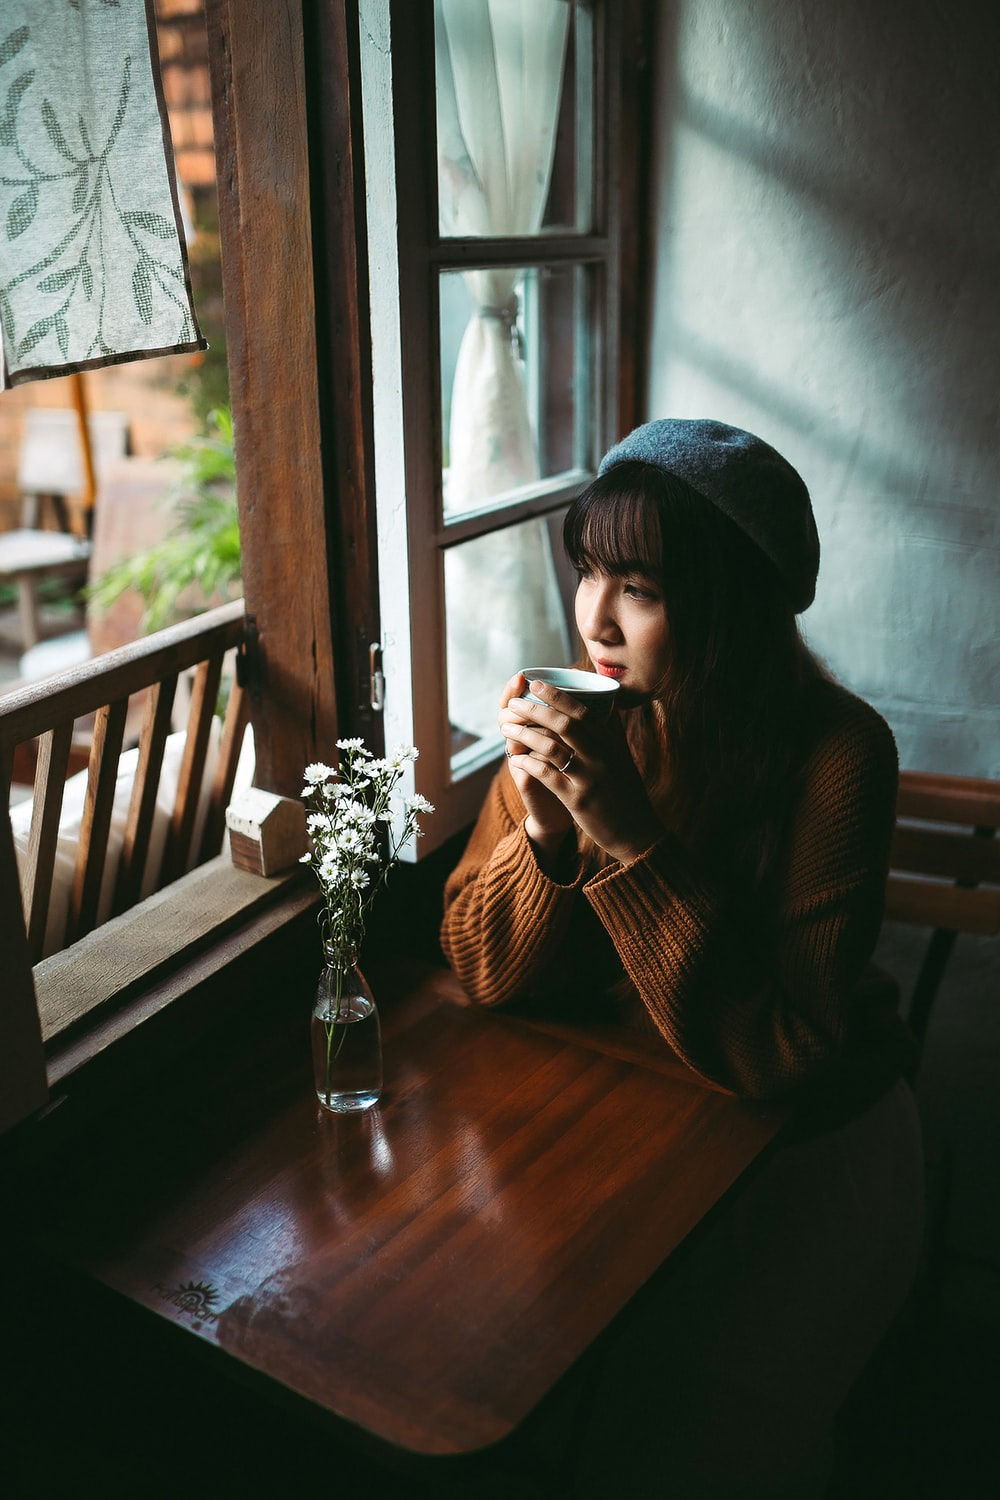 woman in black knit cap sitting on brown wooden chair